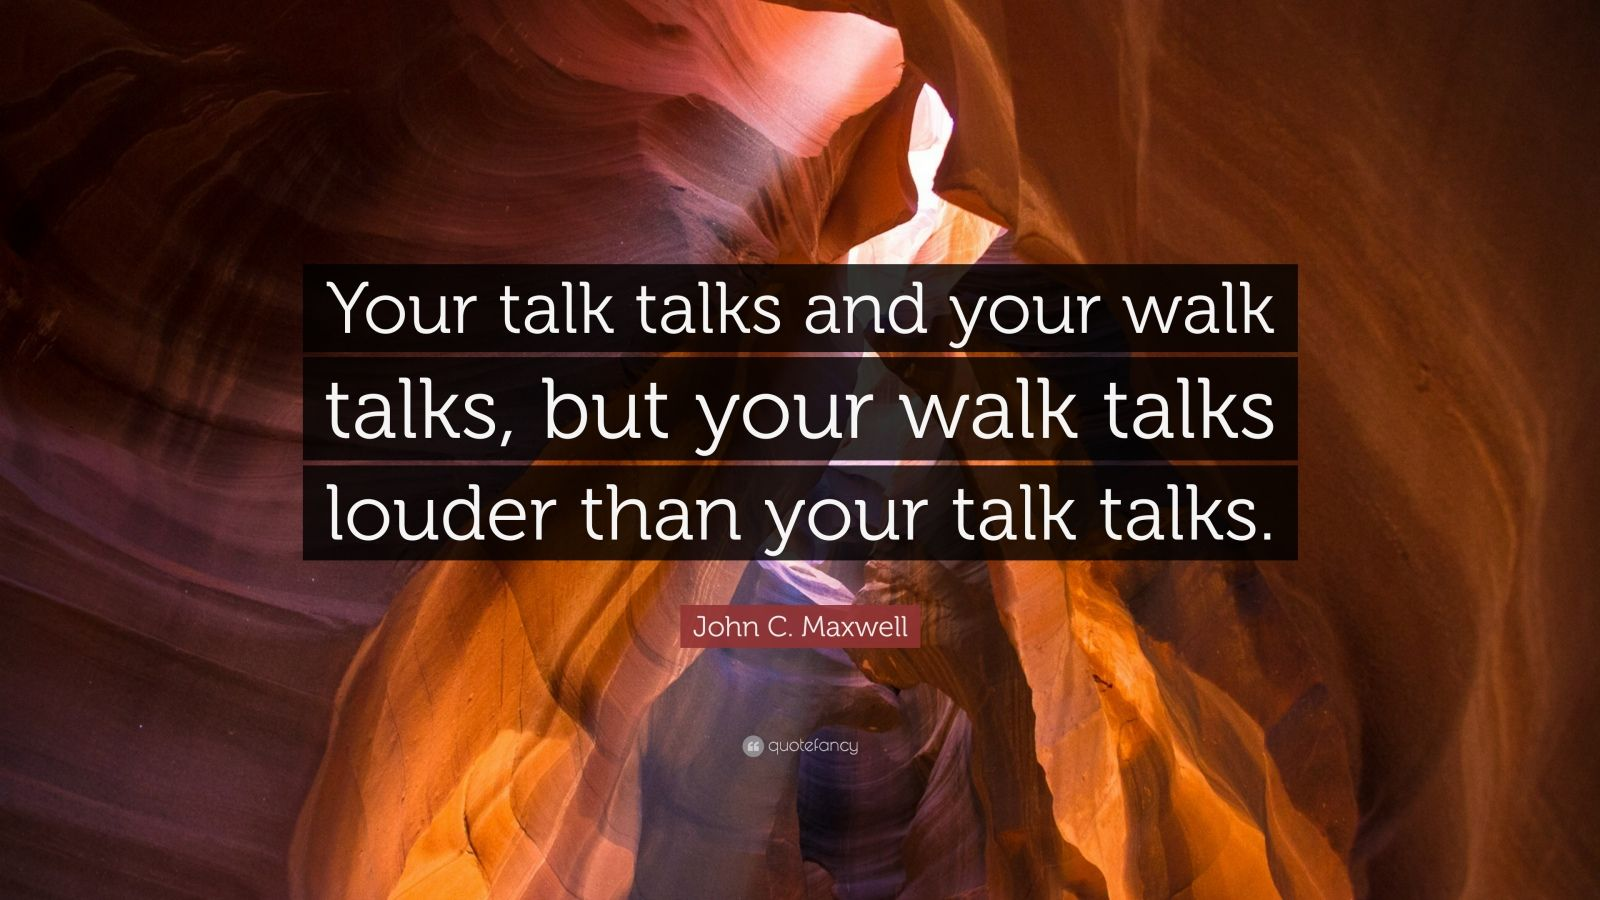 """John C. Maxwell Quote: """"Your talk talks and your walk talks, but your walk talks louder than your talk talks."""""""